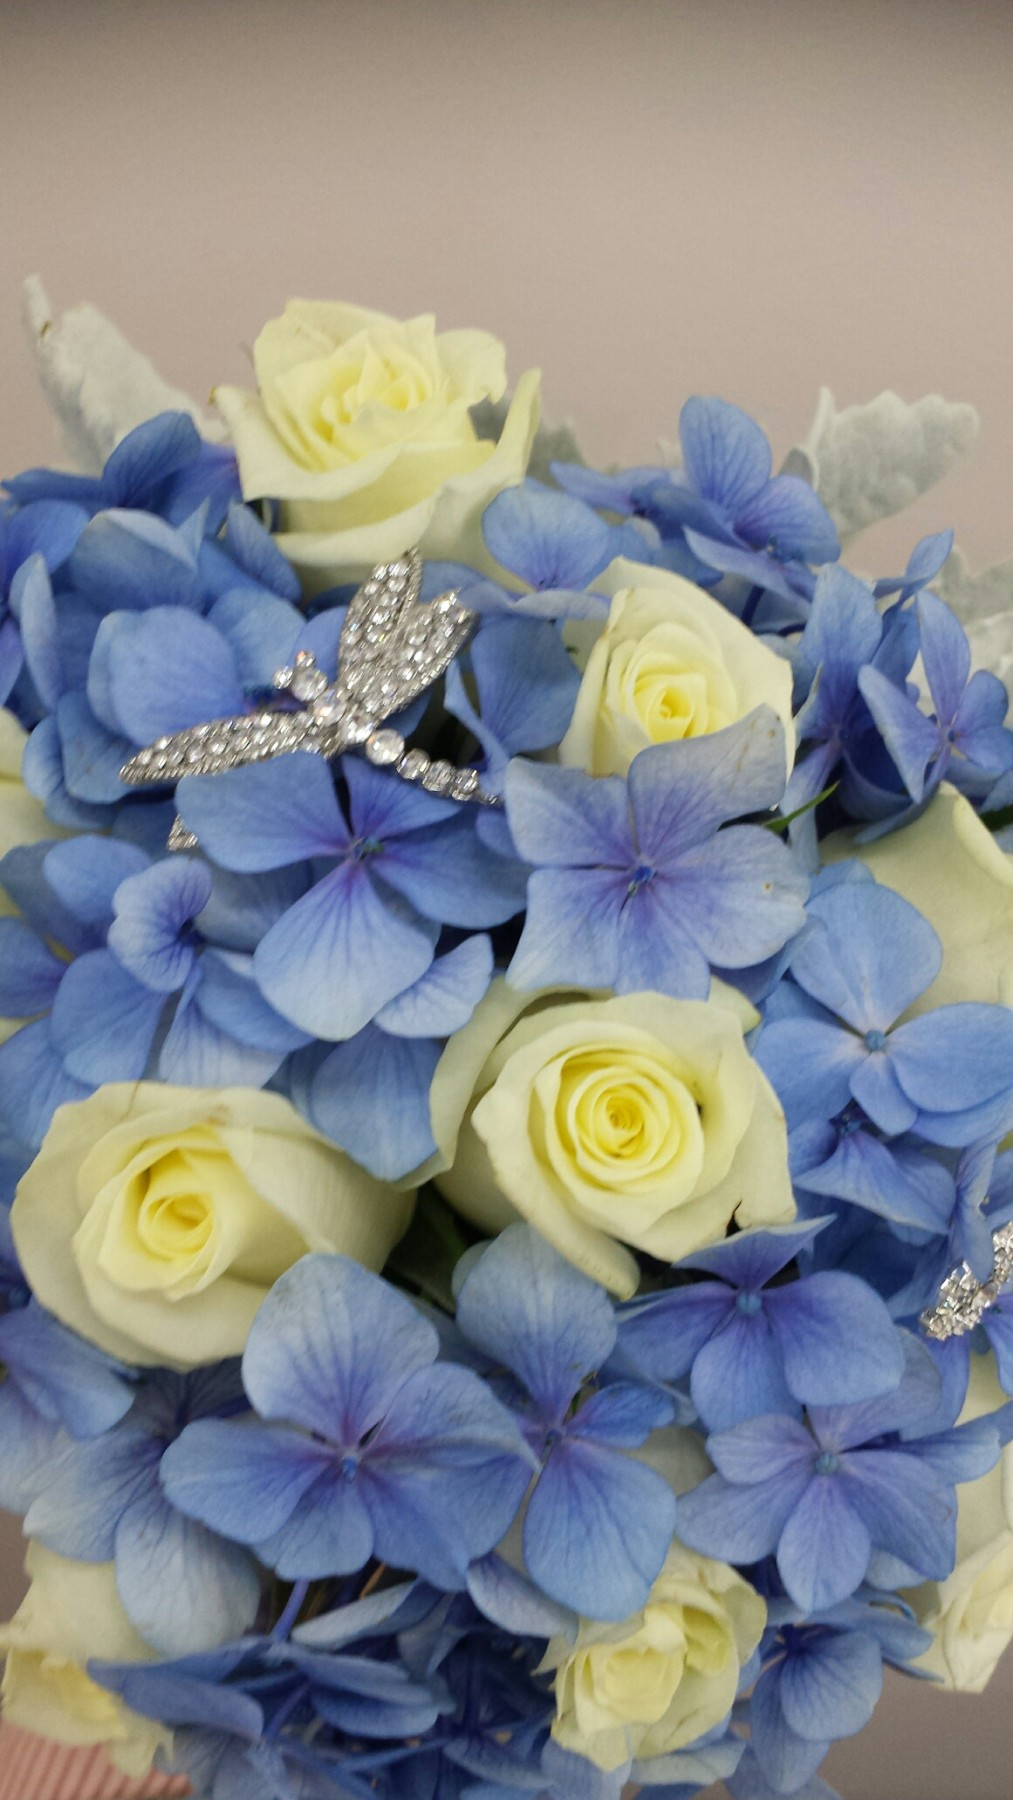 blue Hygrangea and white roses